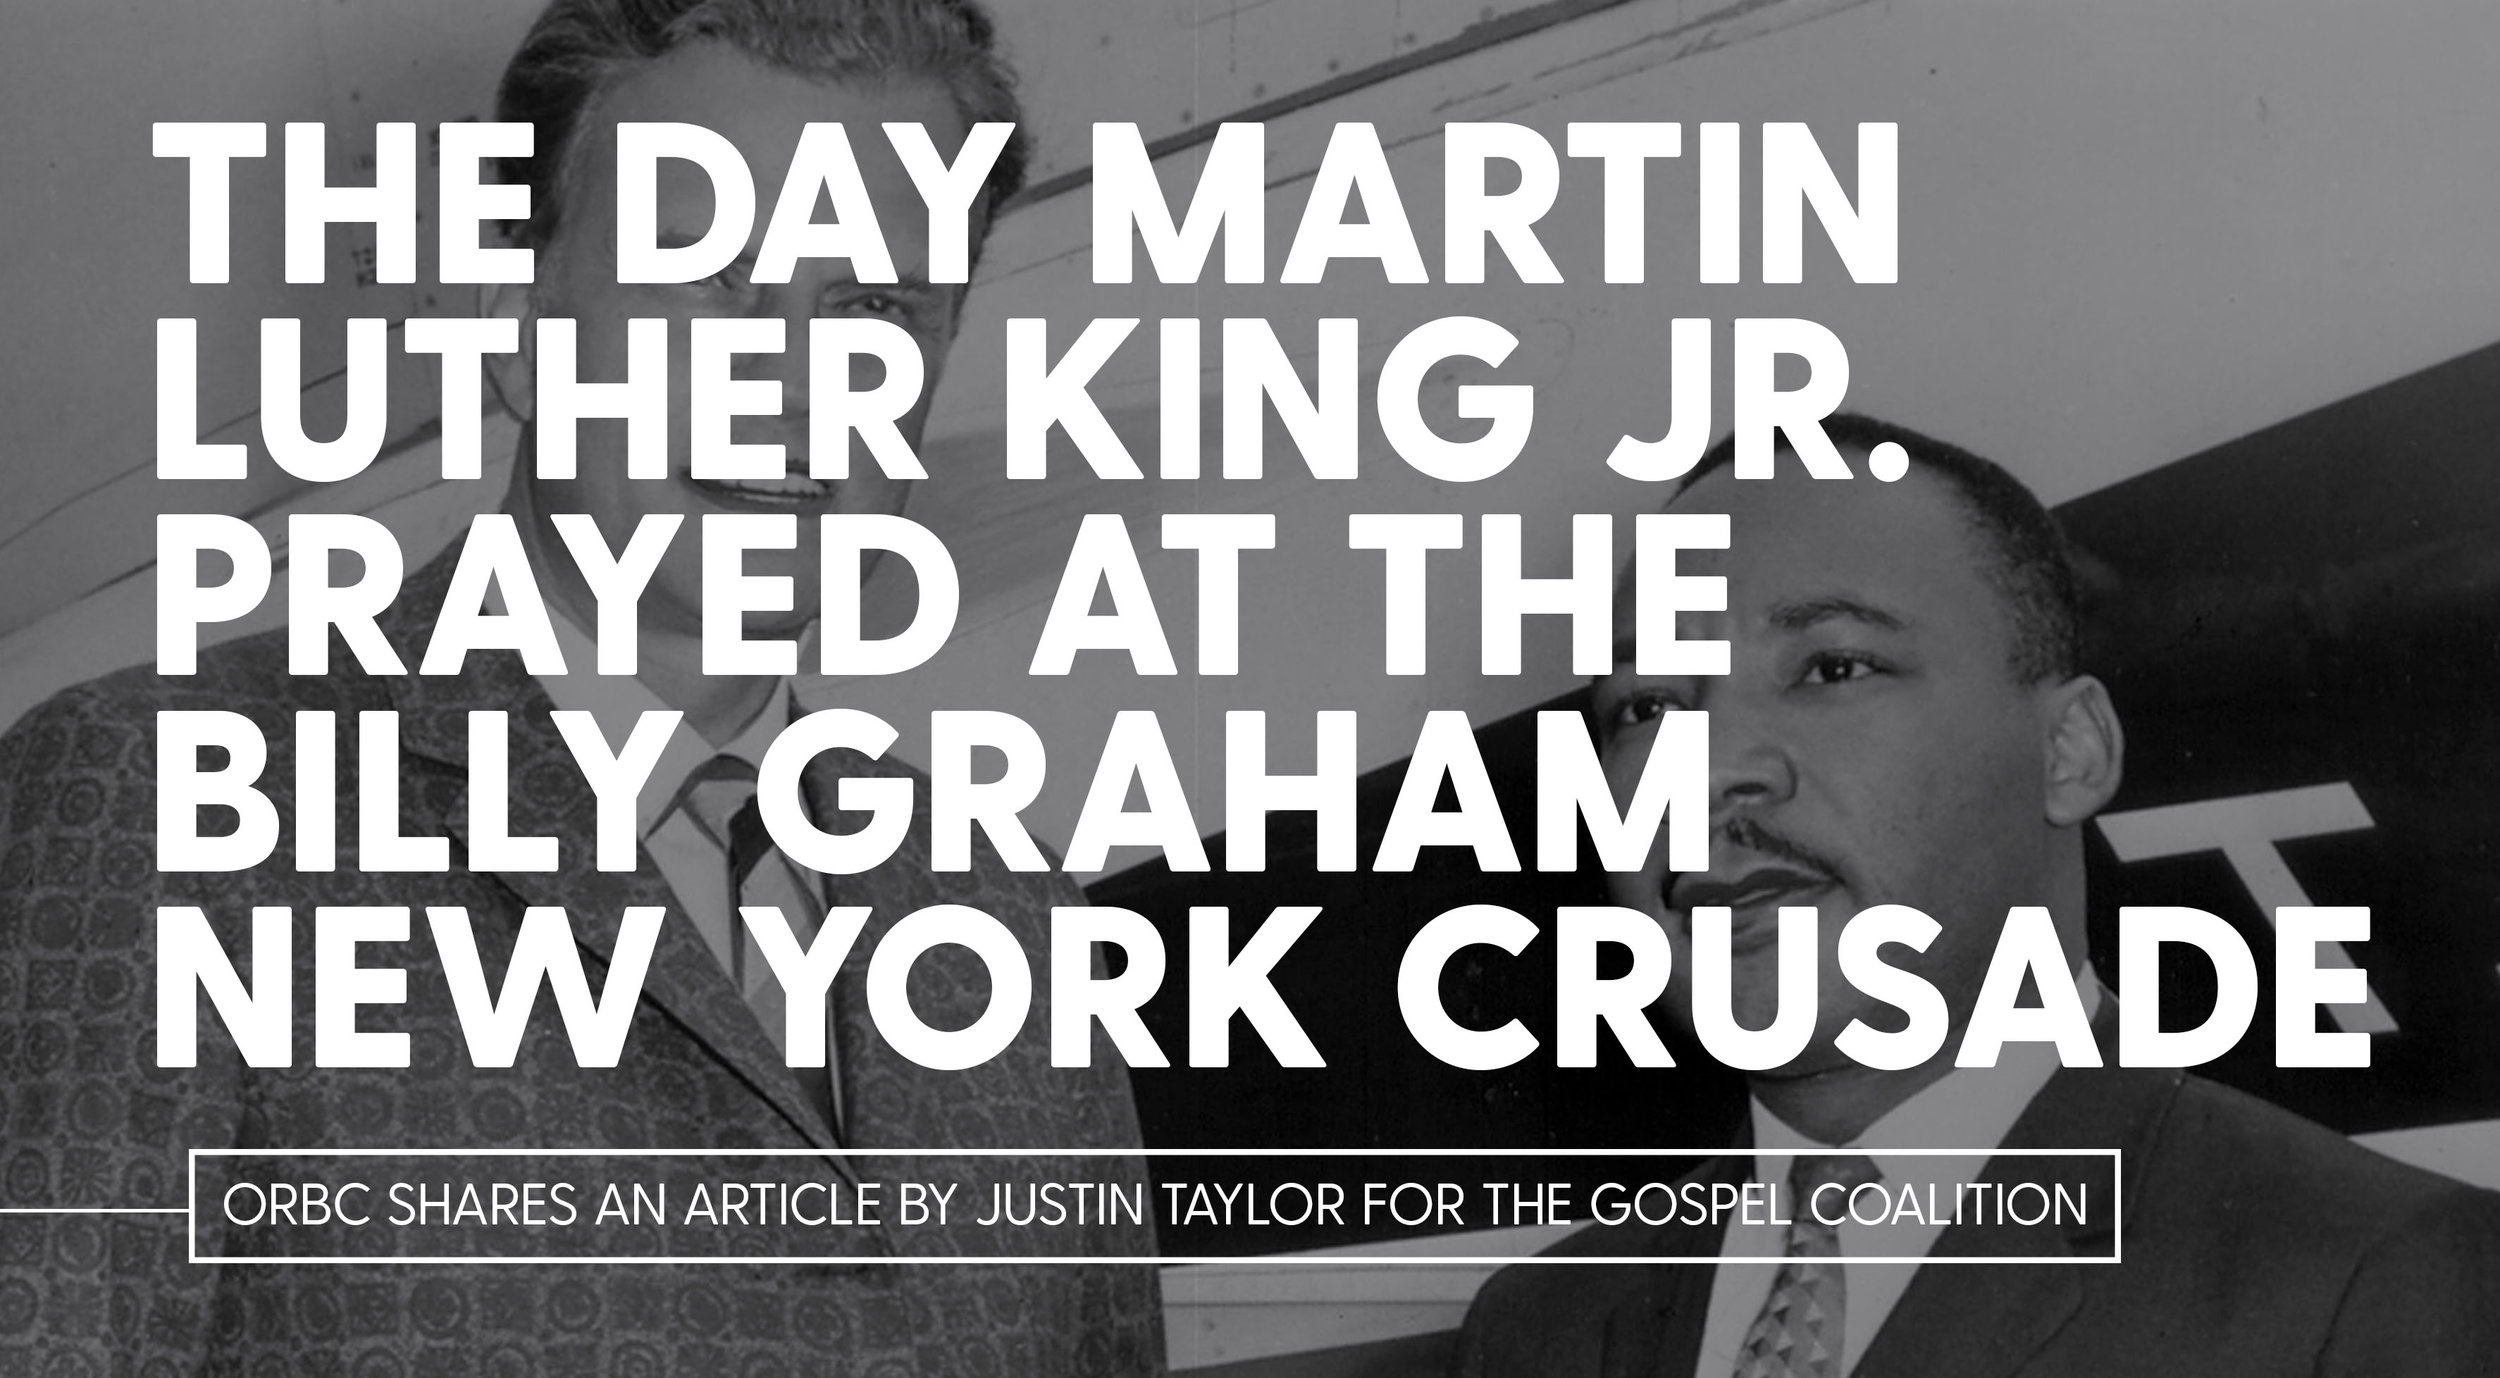 The Day Martin Luther Luther King Jr. Prayed at the Billy Graham New York Crusade.jpg